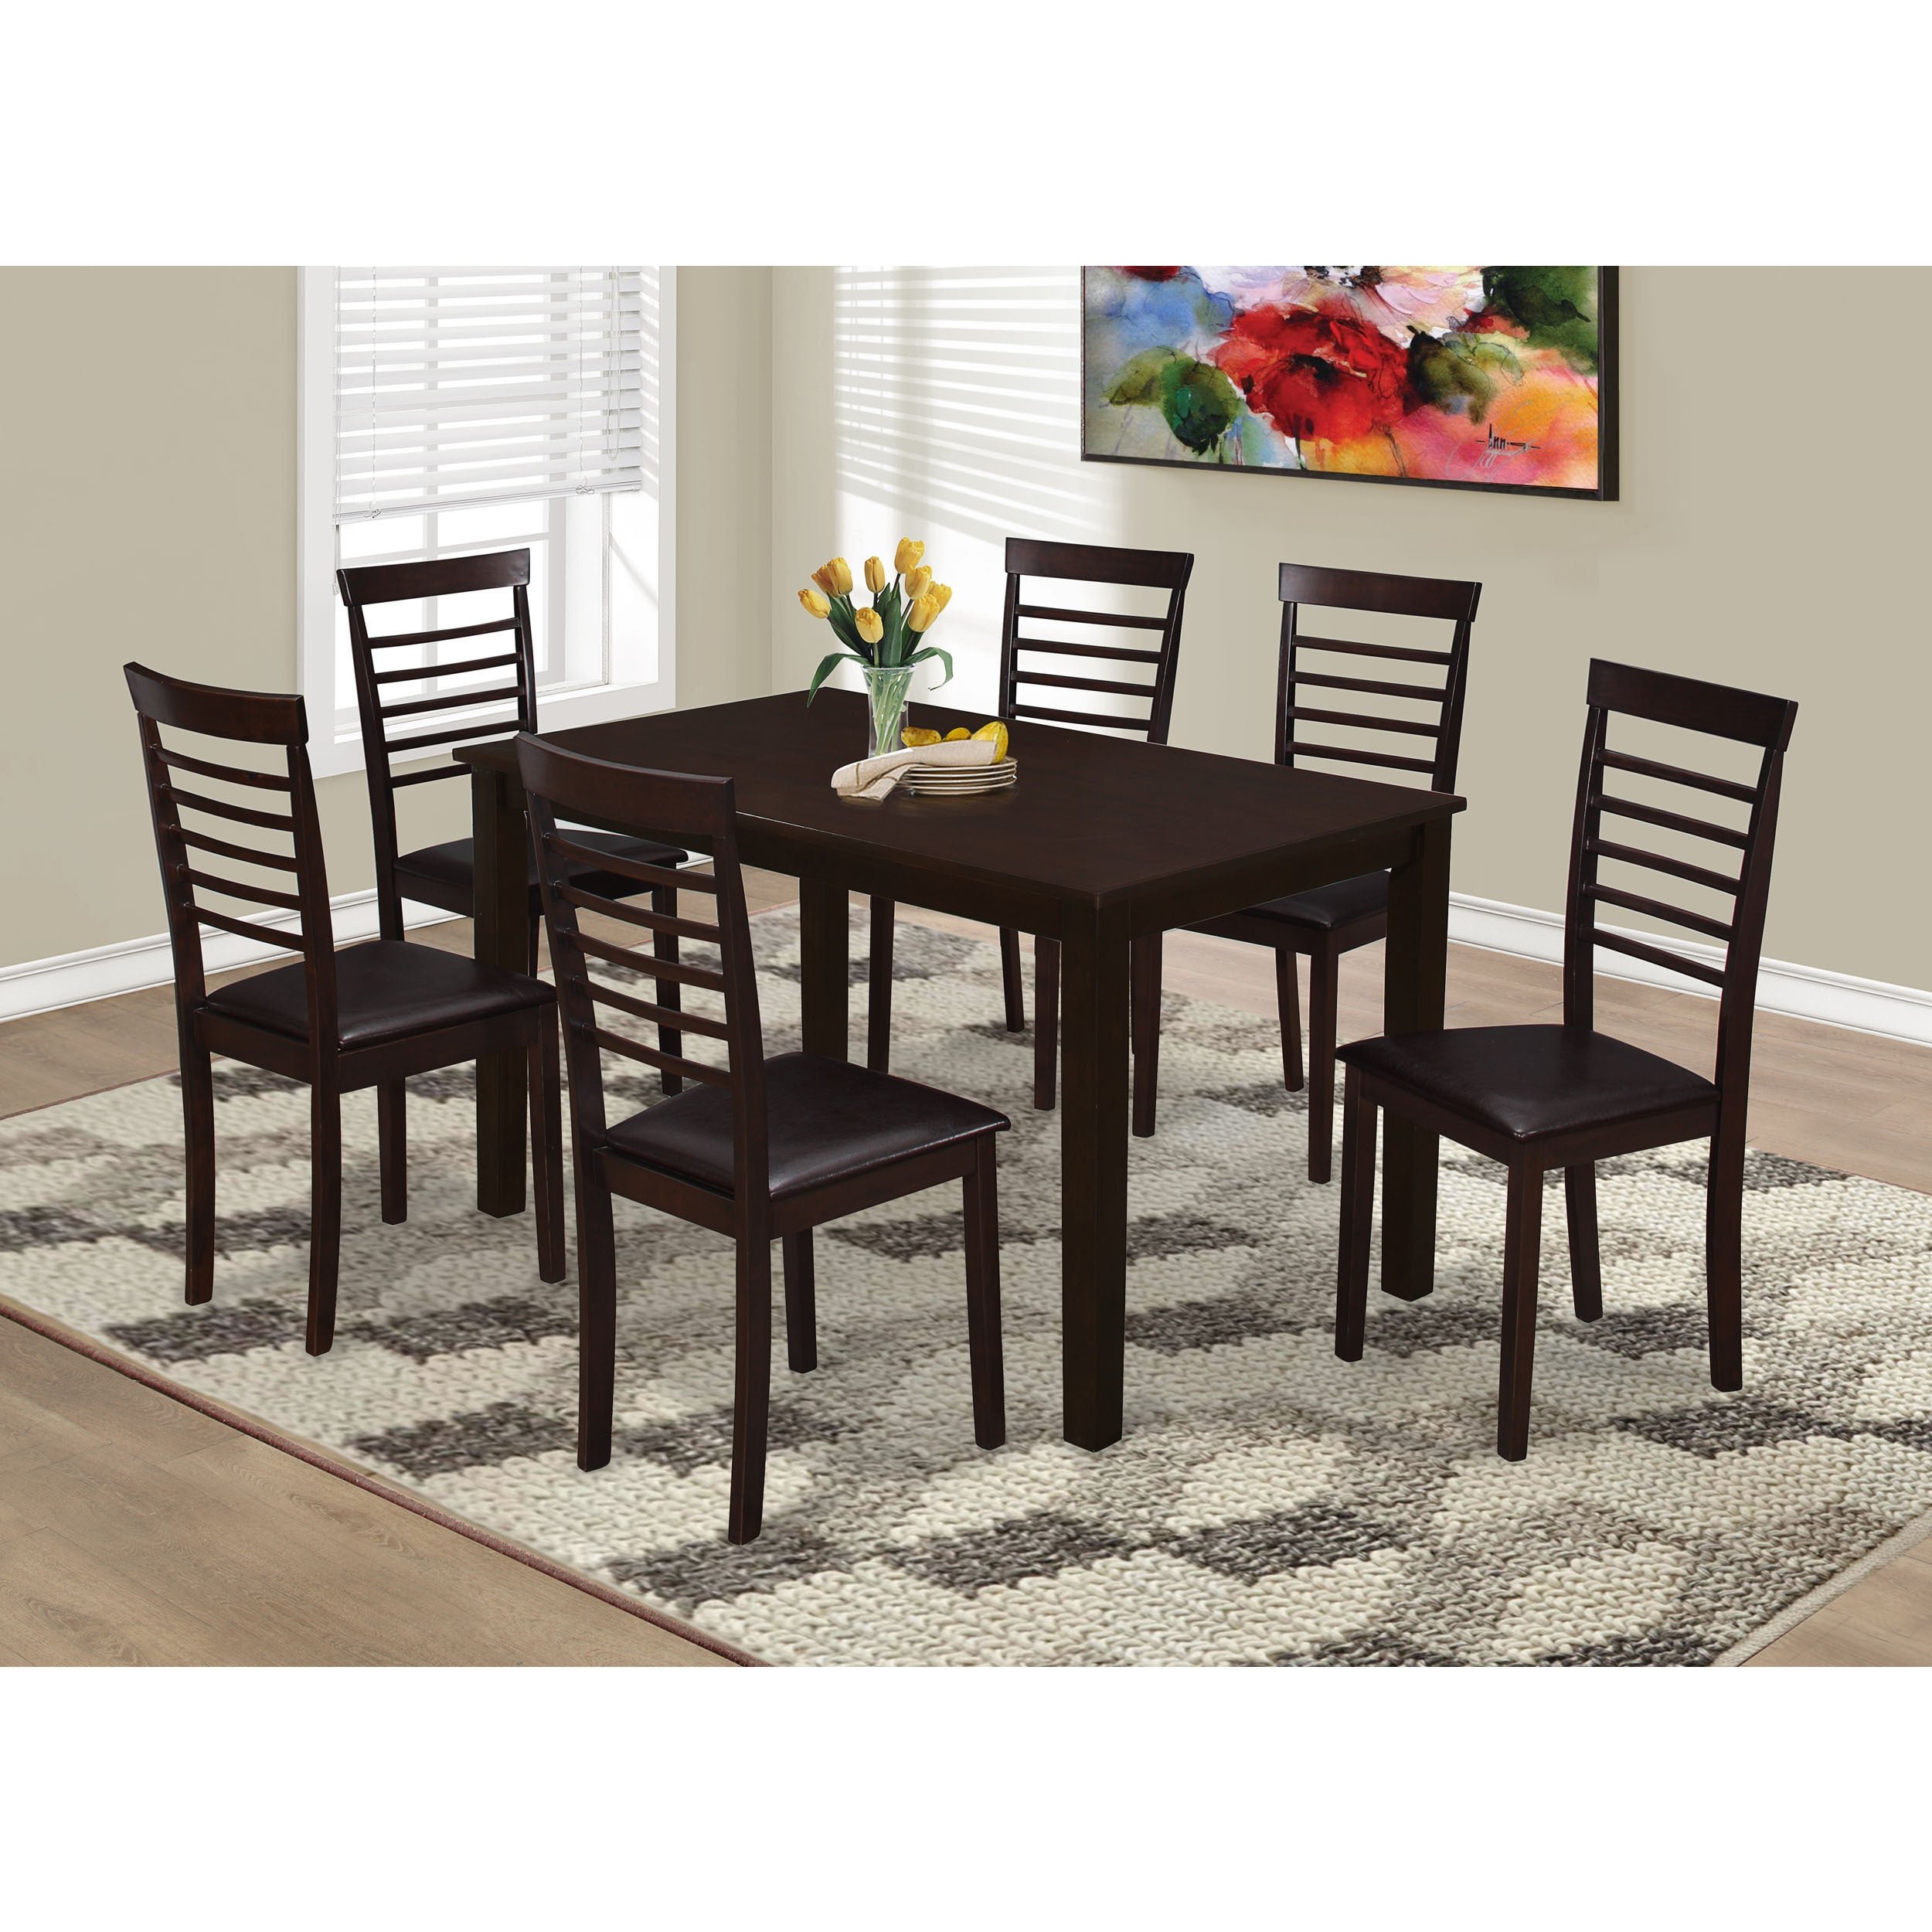 Clay alder home loma cappuccino and brown faux leather ladder back dining chairs set of